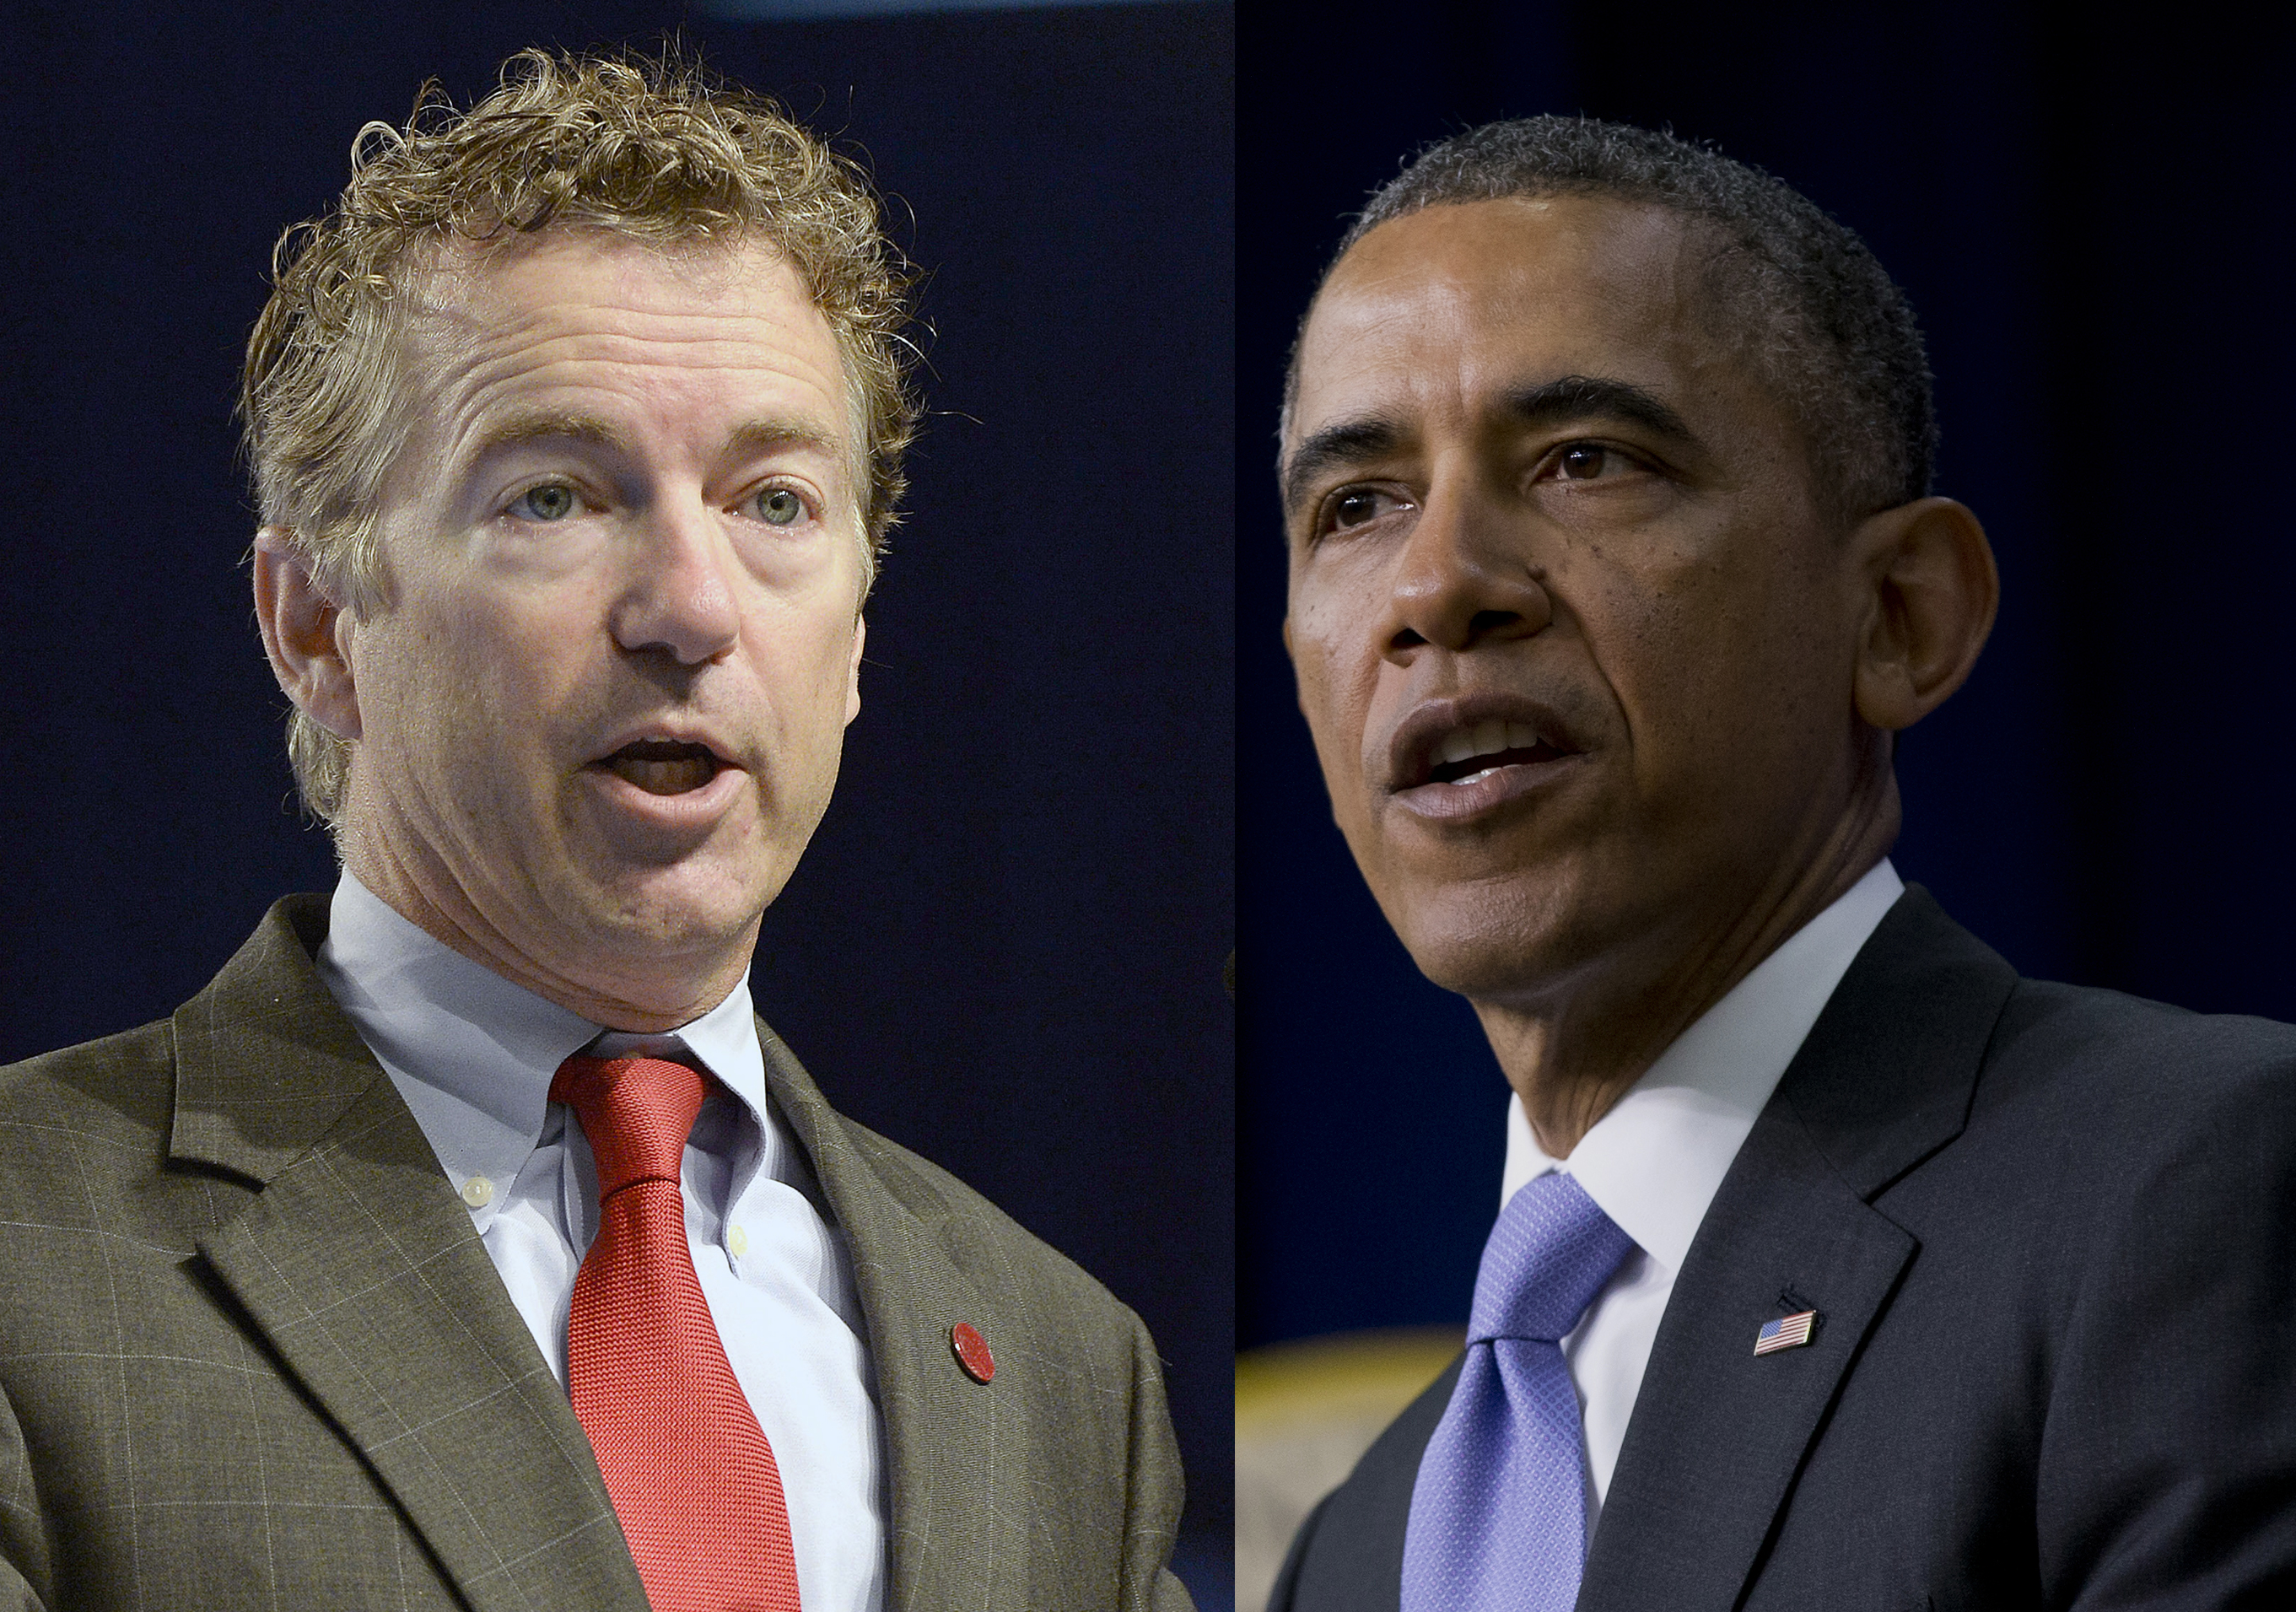 Image result for RAND PAUL GETS READY TO DIG INTO OBAMA'S PAST